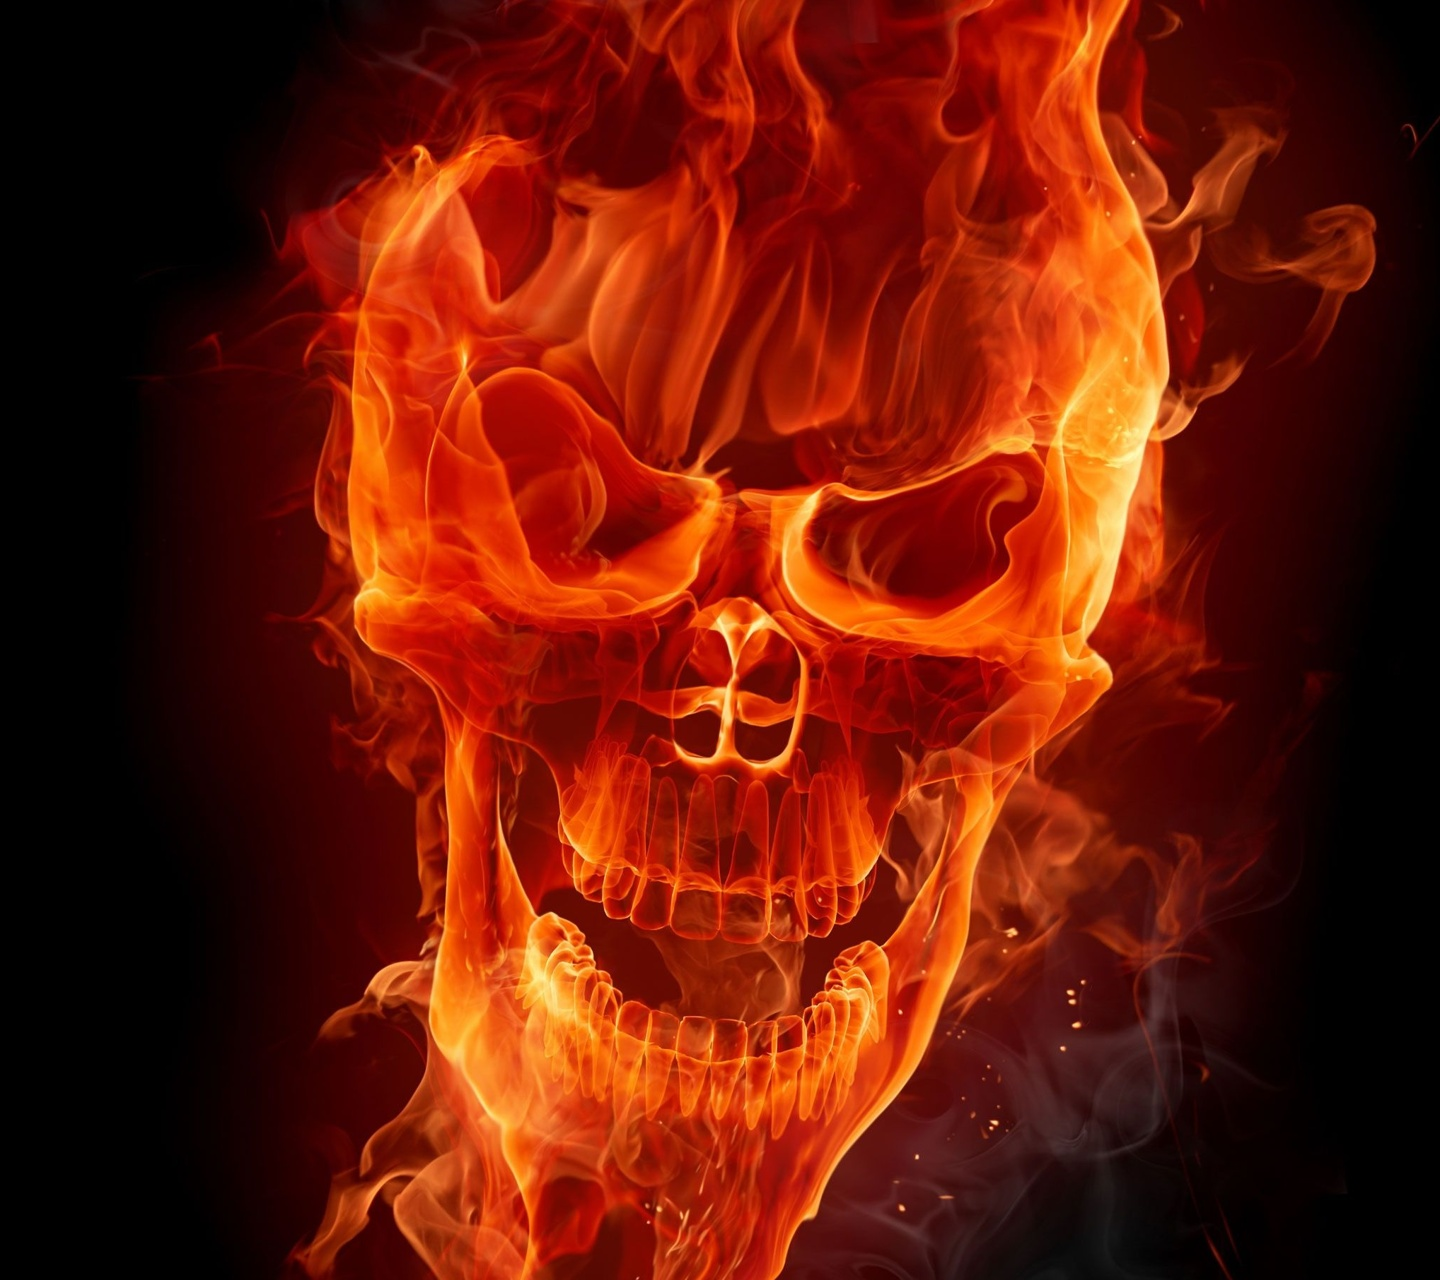 skull 1440 x 1280 Wallpapers   2897890   design skull fire flame red 1440x1280